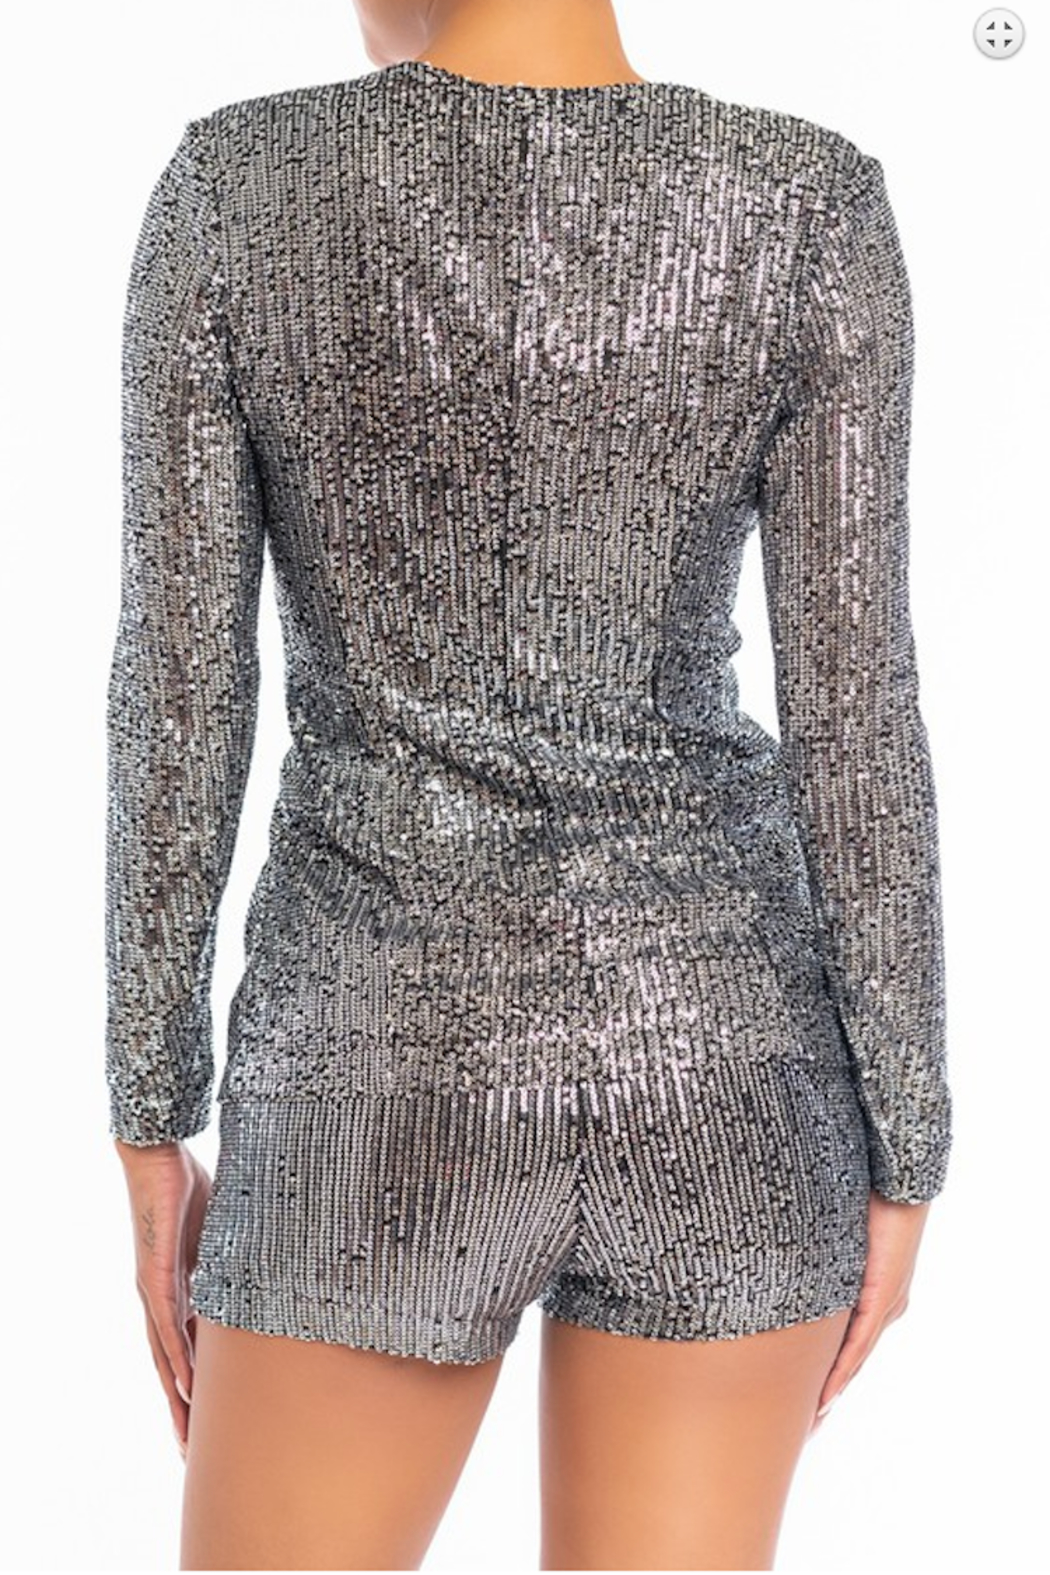 luxxel Sequin Short and Blazer Set - Main Image